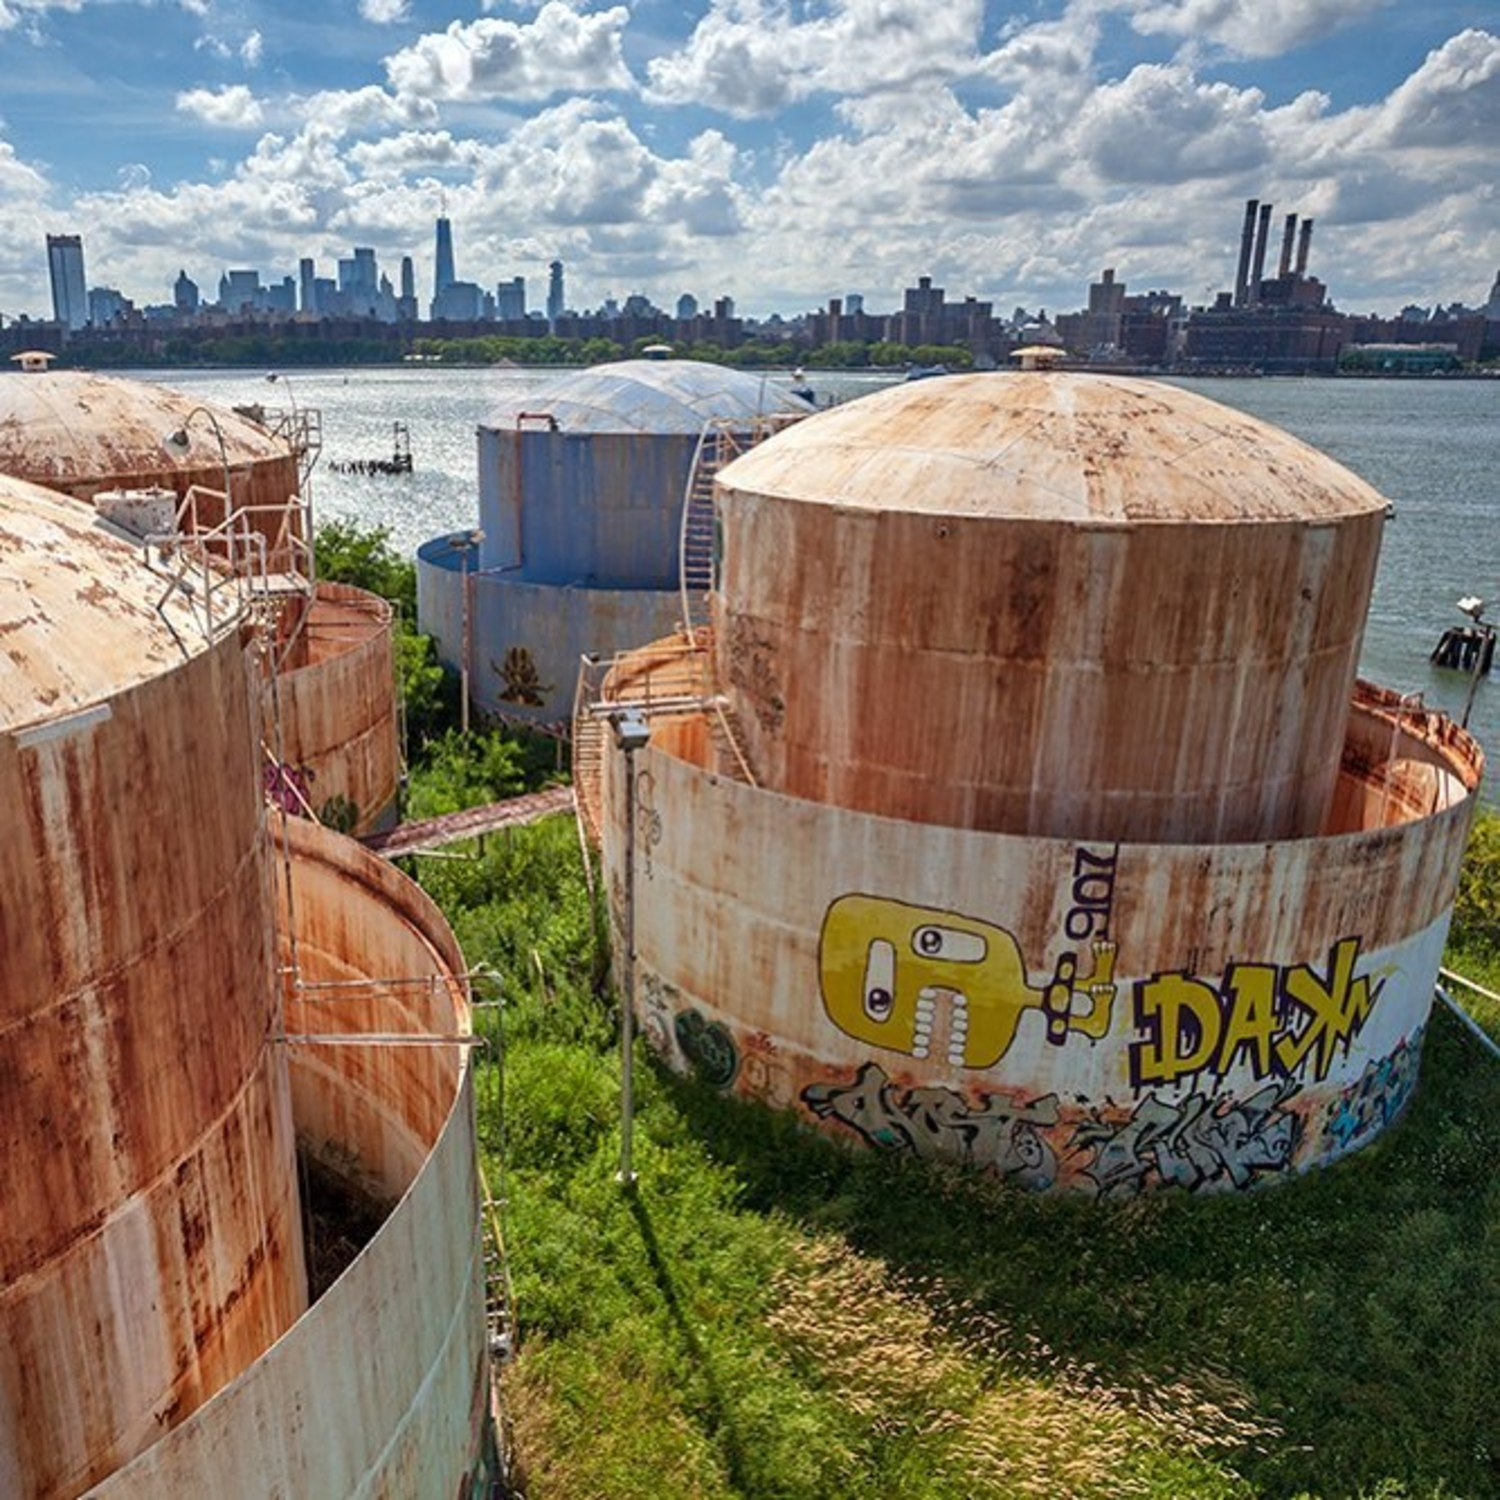 The Tanks at Bushwick Inlet Park